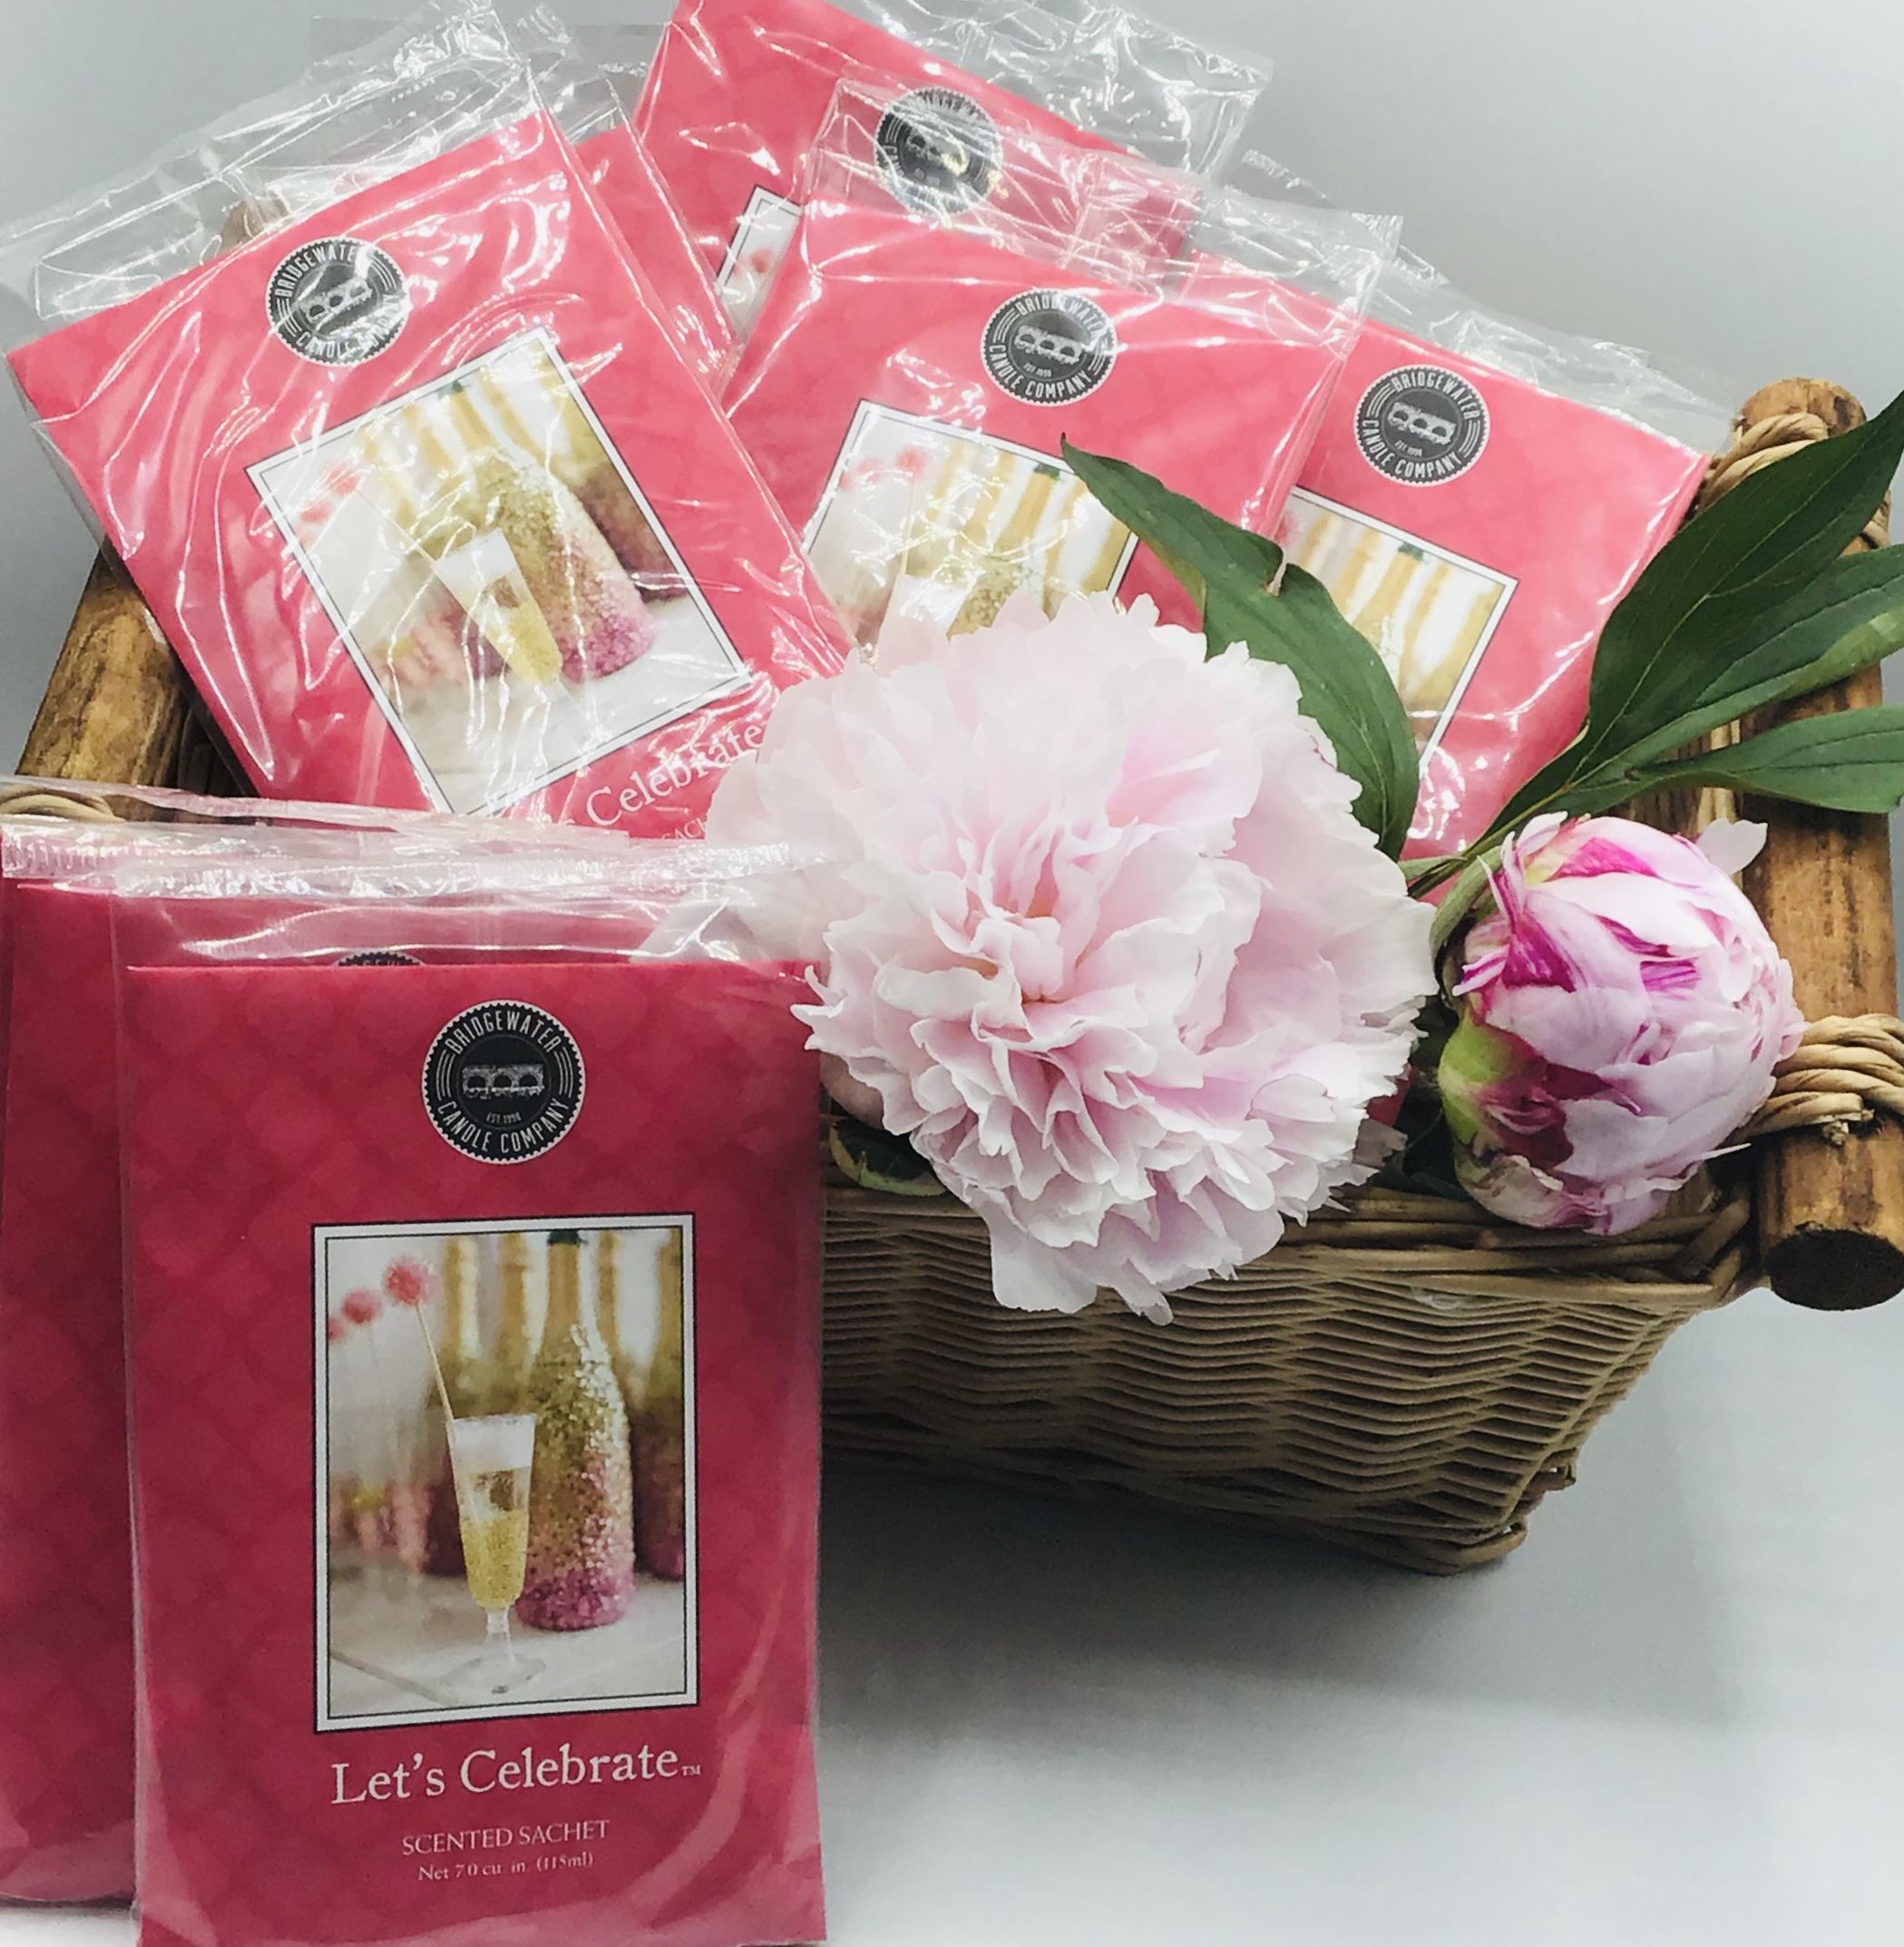 Lets Celebrate Scented Sachet Bundle